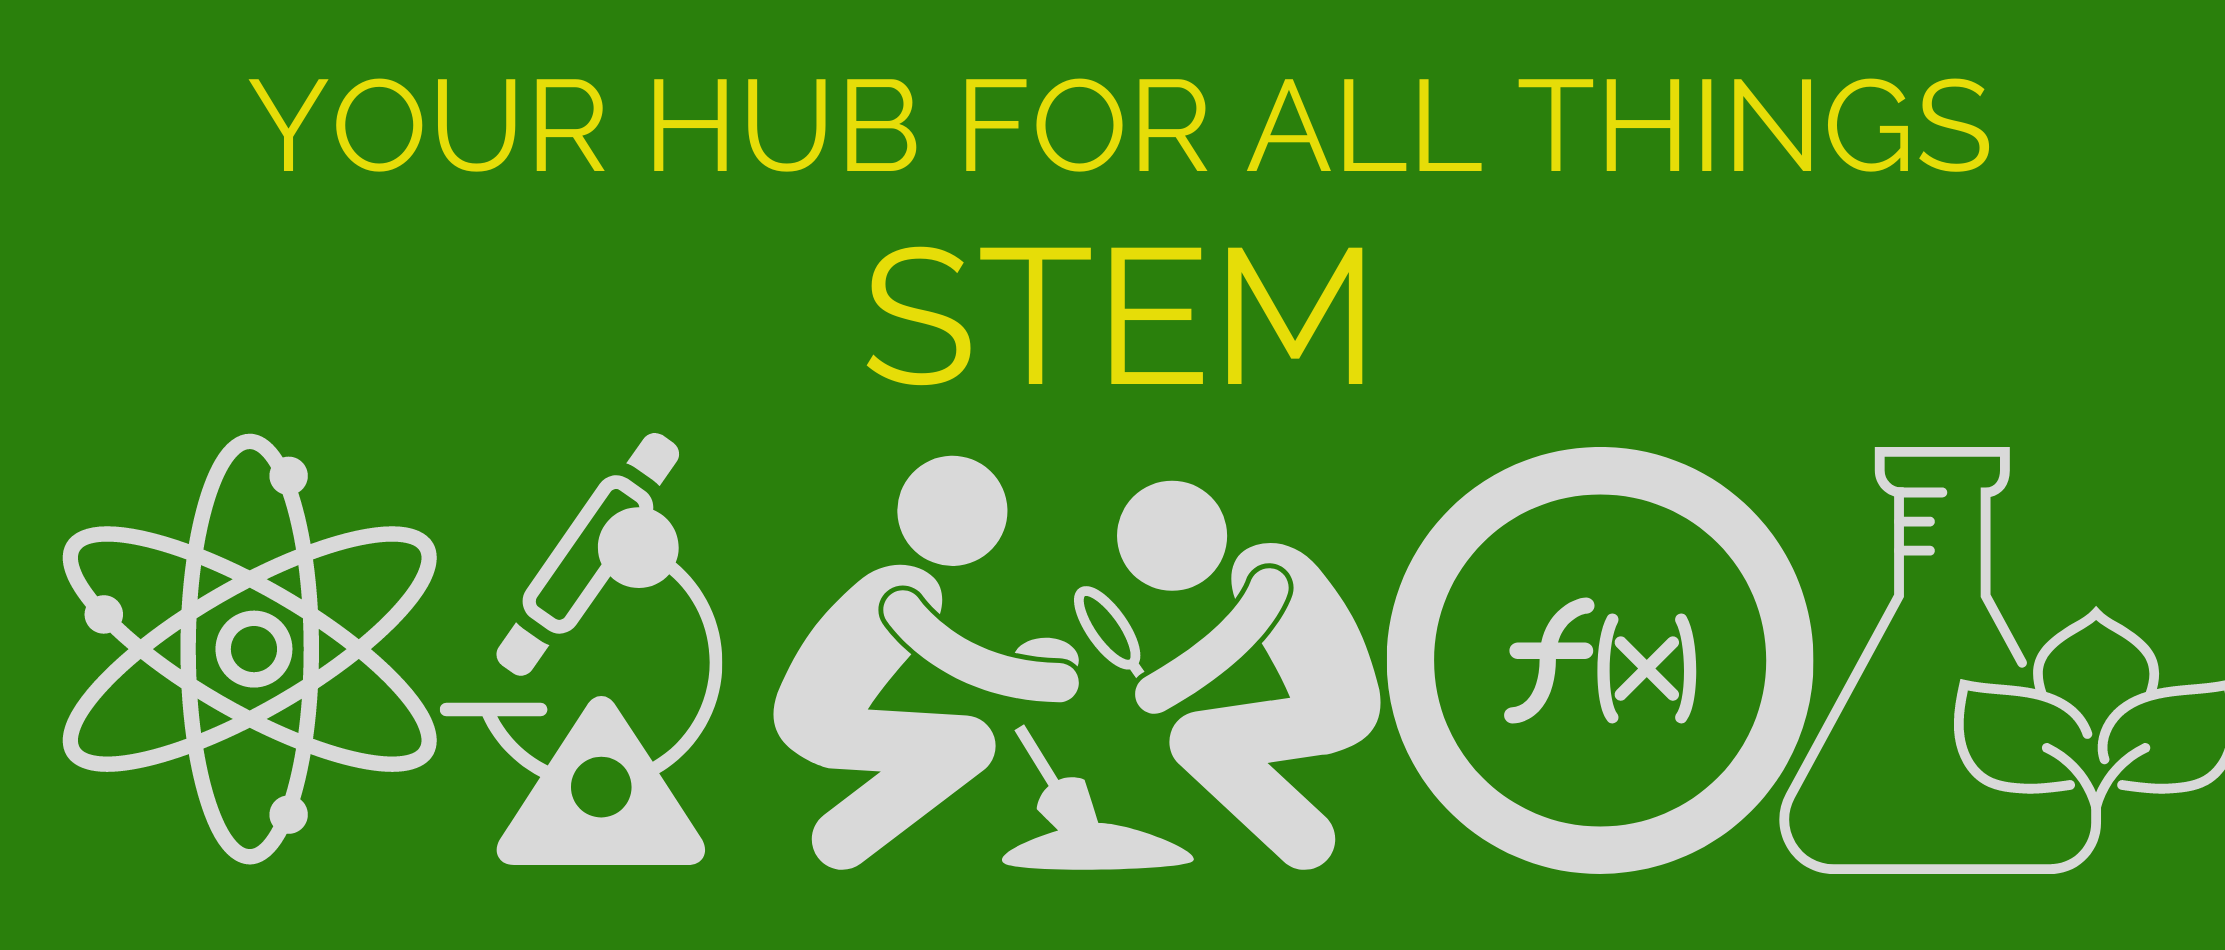 Your hub for all things STEM